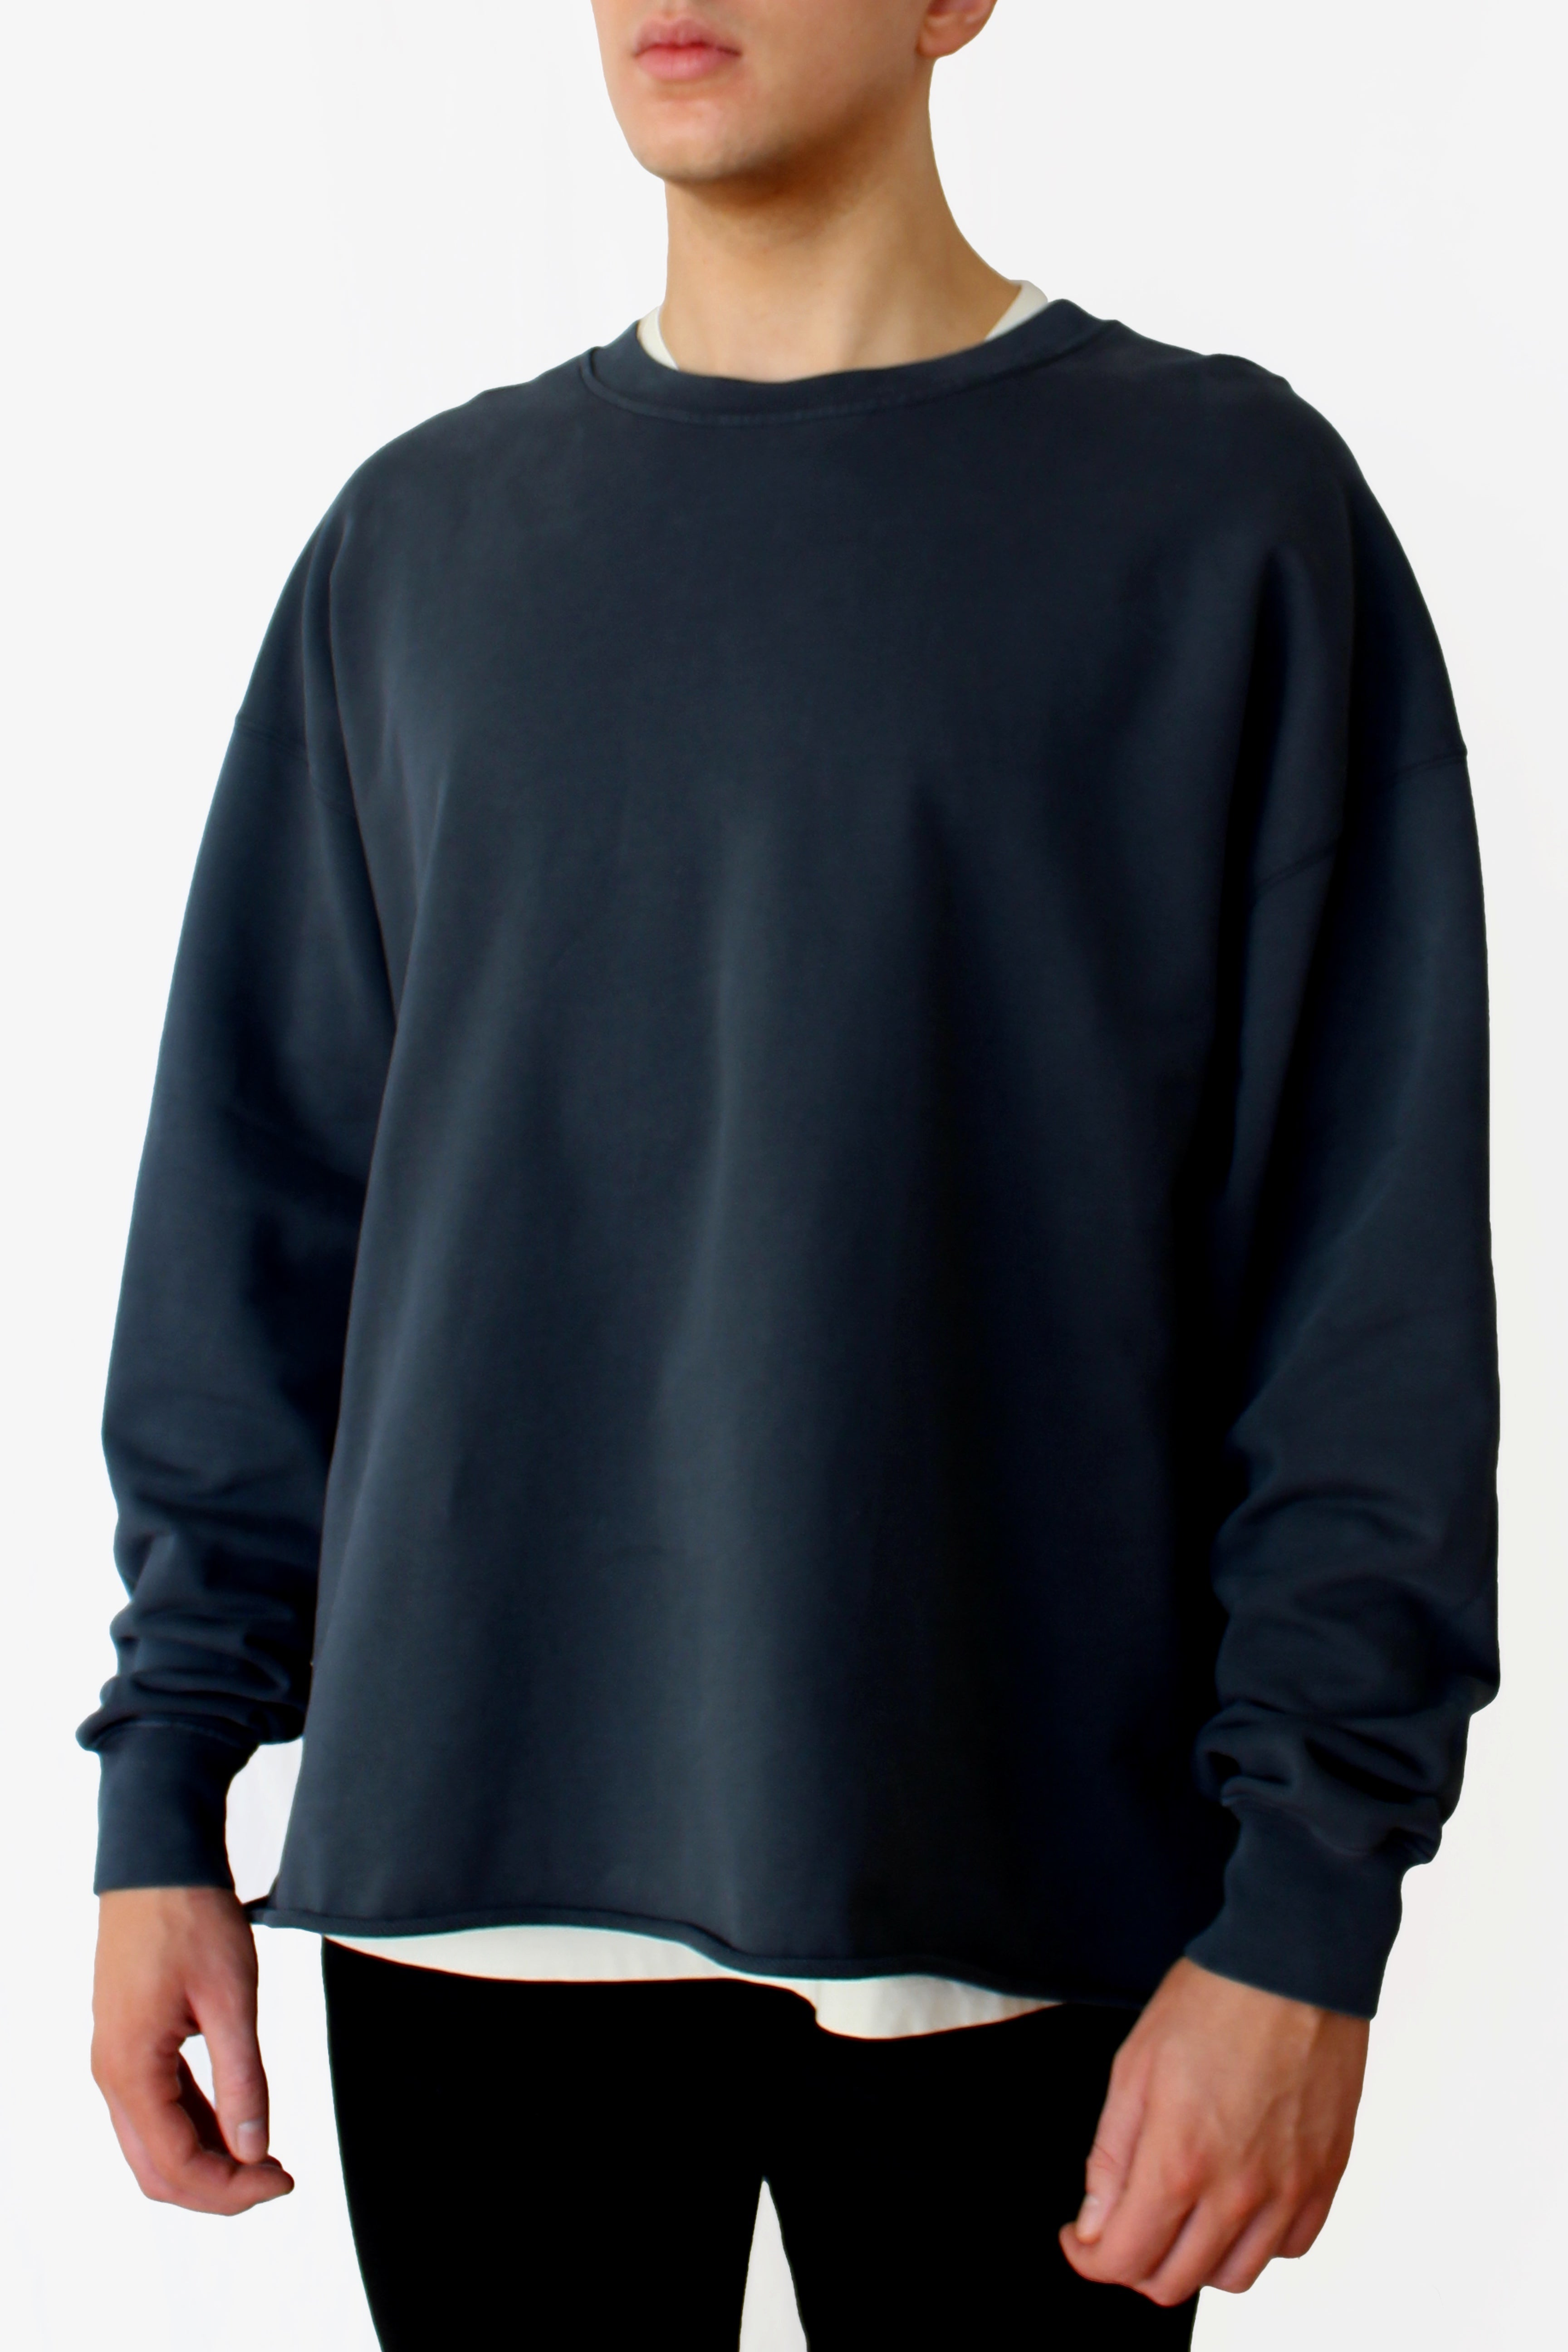 oversized raw-edge sweatshirt - nori black - Commun des Mortels